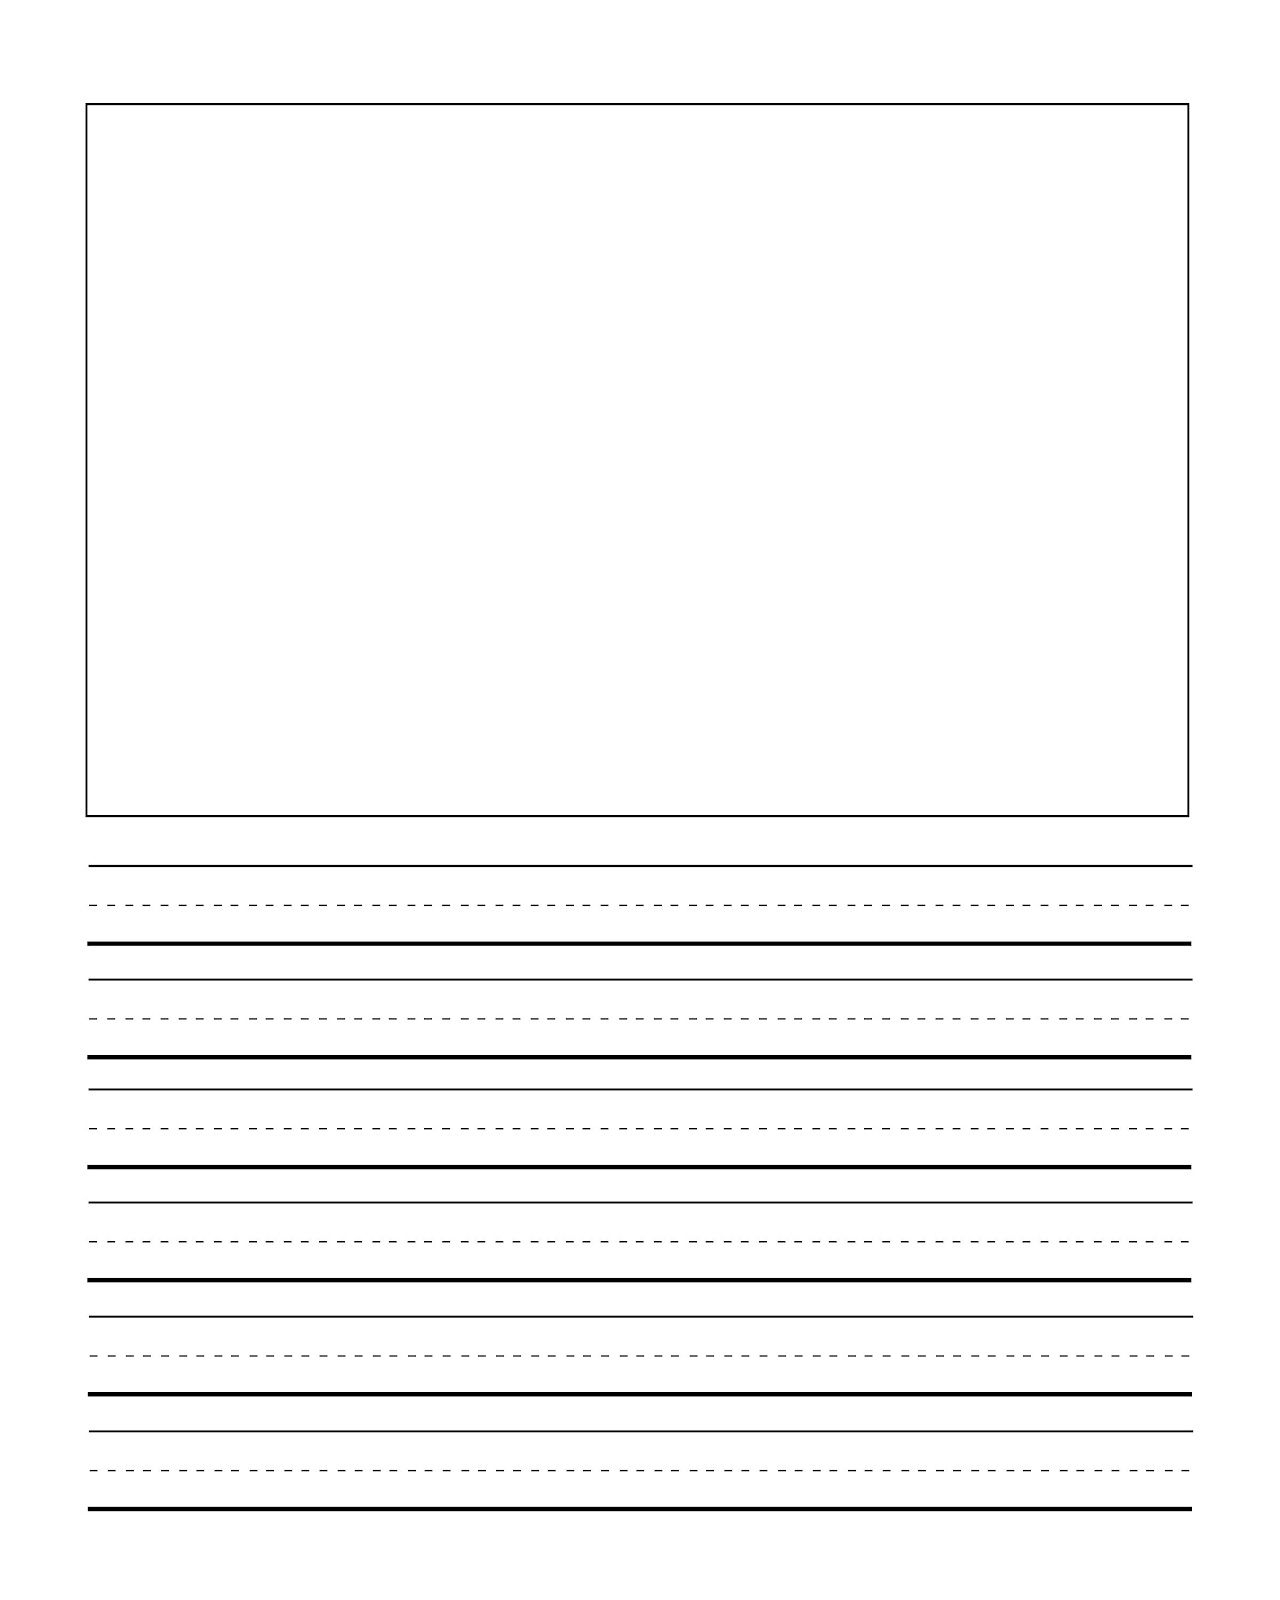 First Grade Writng Paper Template With Picture | Journal Writing - Free Printable Handwriting Paper For First Grade